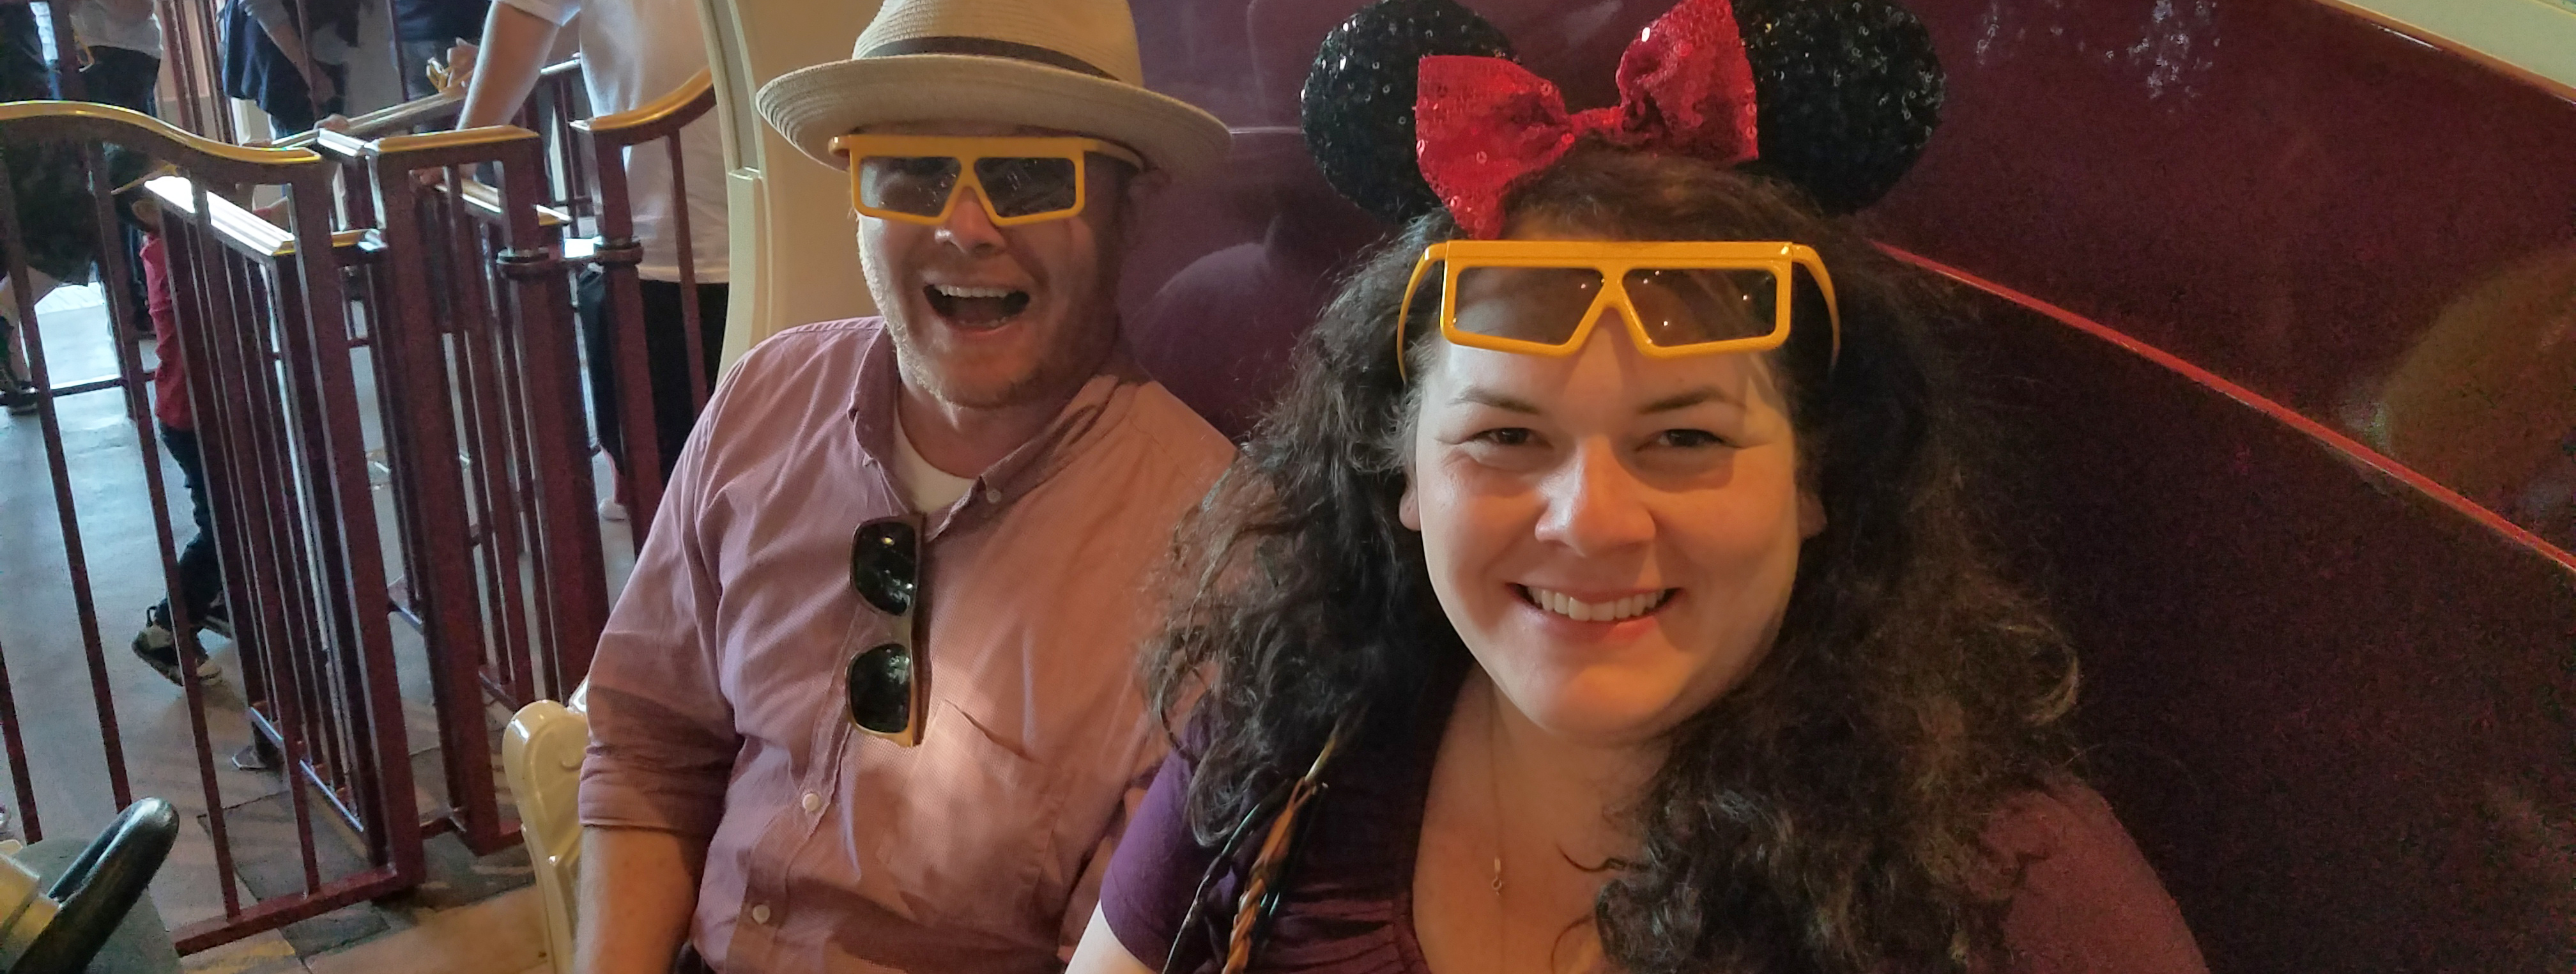 How To Enjoy Disneyland like the Wine-Swigging Adult You Are